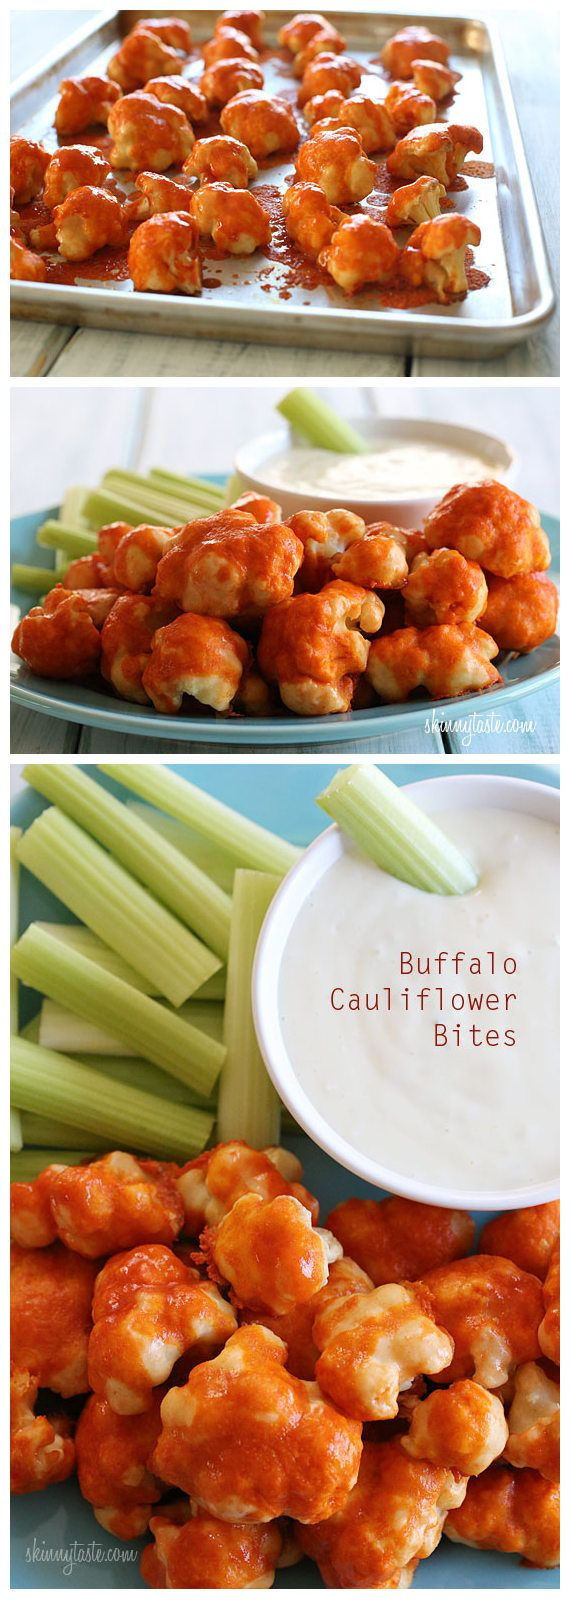 Spicy Buffalo Cauliflower Bites. Will need to try this out (replacing the flour with Almond Meal)